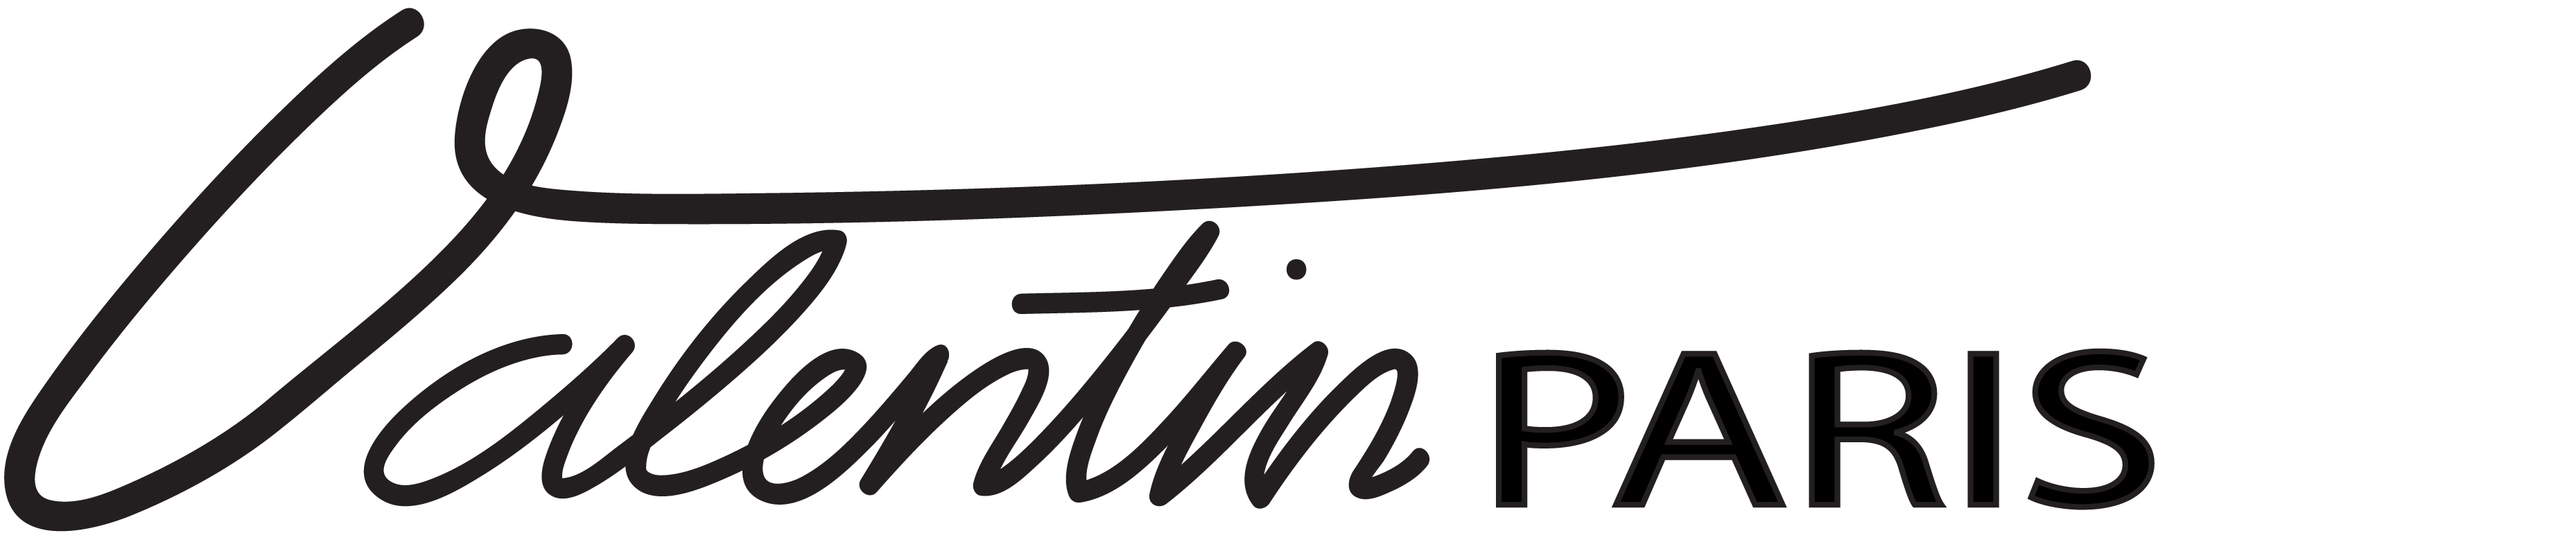 Valentin PARIS's Signature